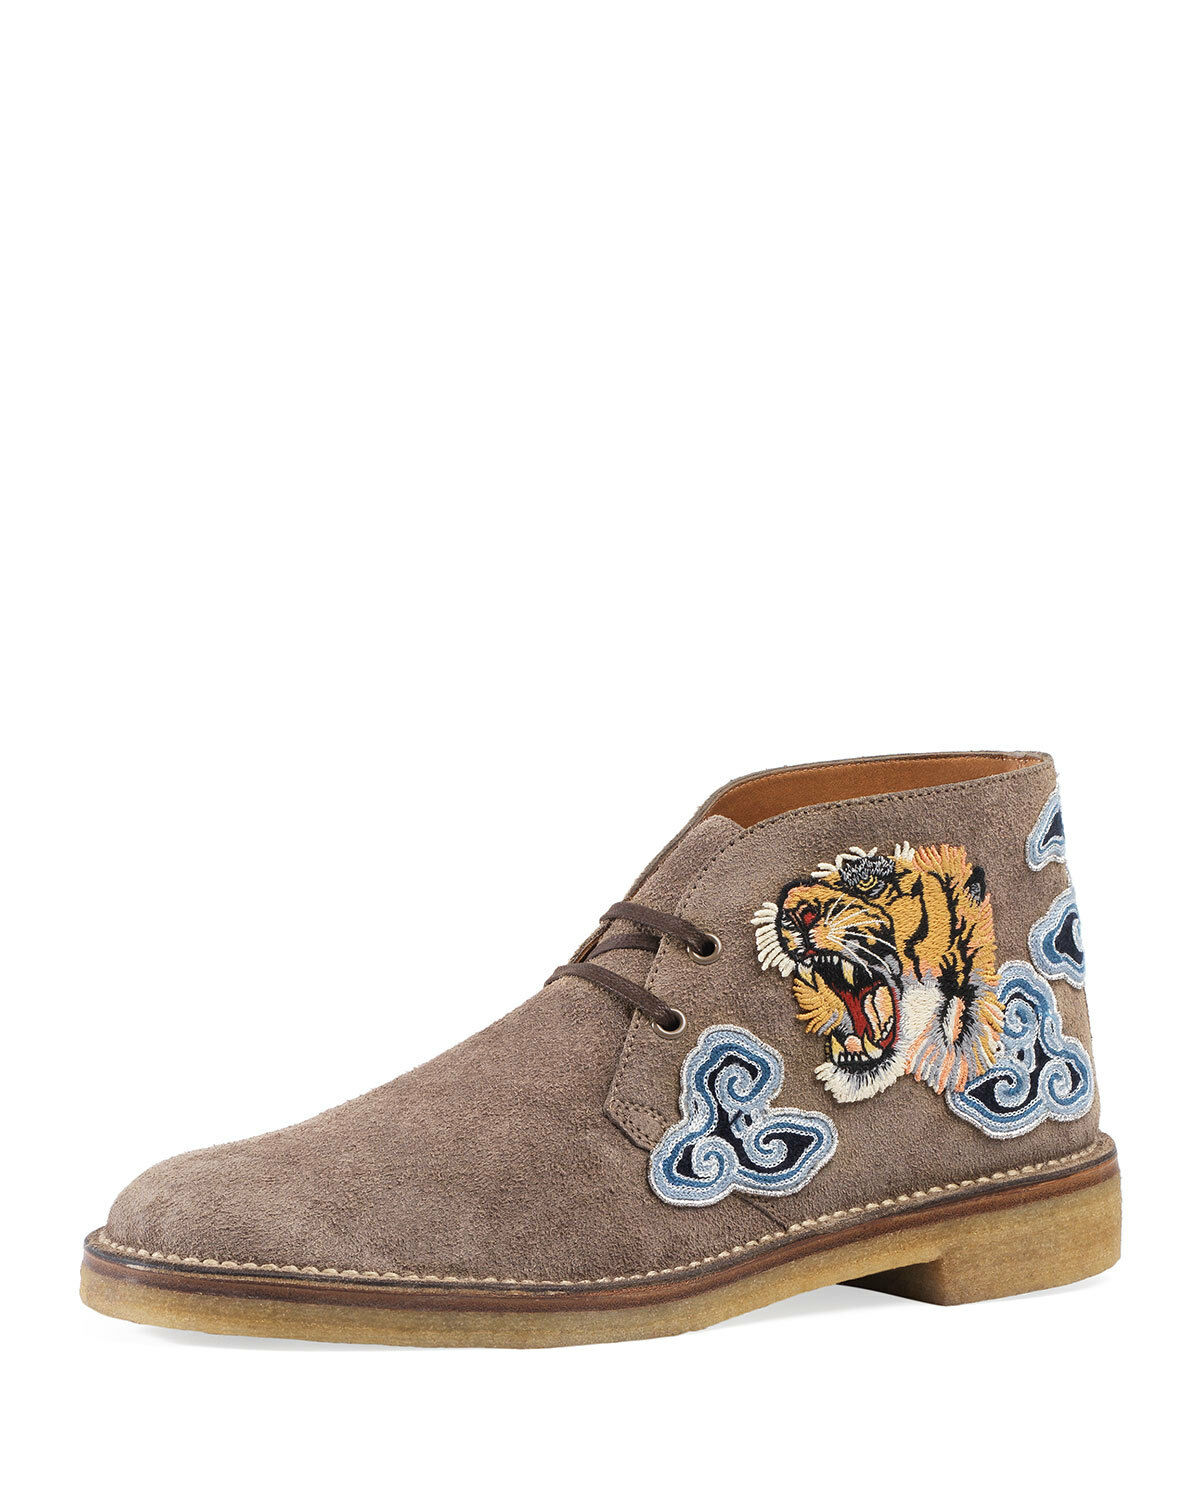 New Gucci New Moreau Suede Suede Tiger Appliqu's Chukka Boots 8.5UK/9.5US Brown